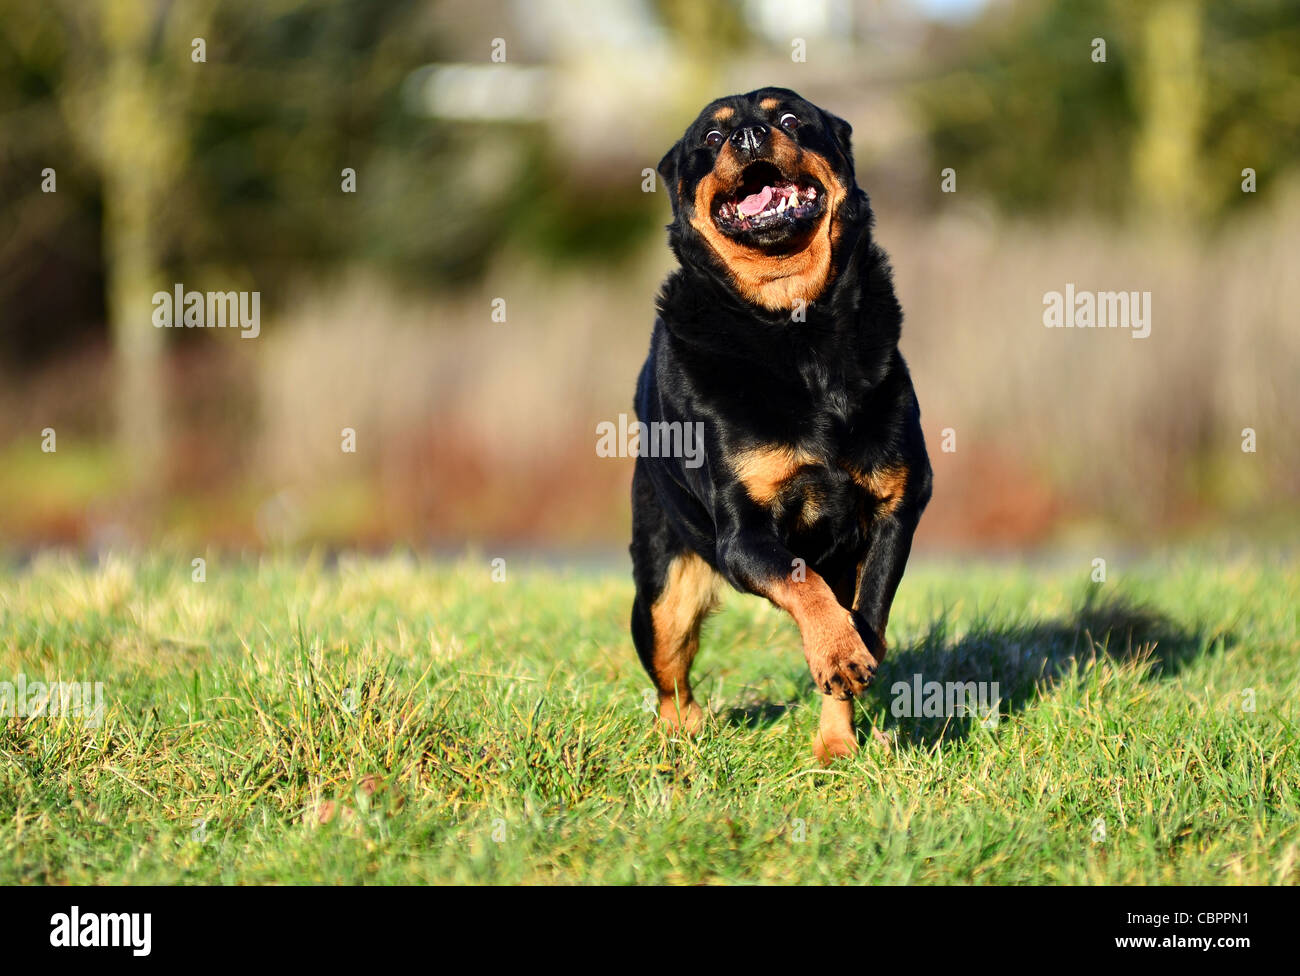 Rottweiler Dog Running Towards Camera On A Sunny Day Stock Photo